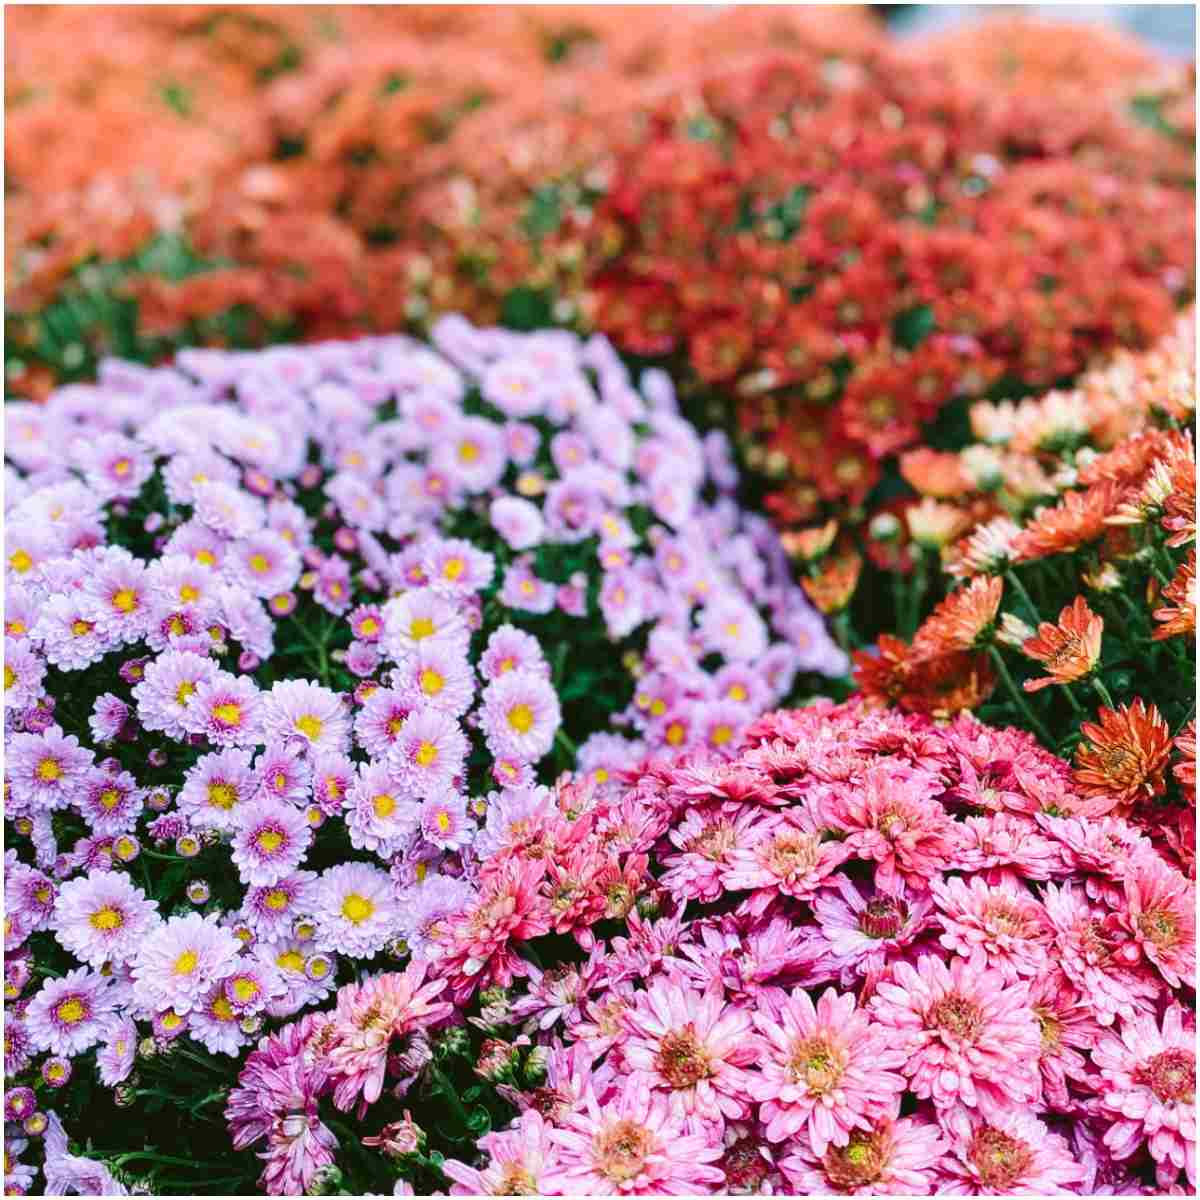 Chrysanthemum Plant That Create Positive Energy In Your Home